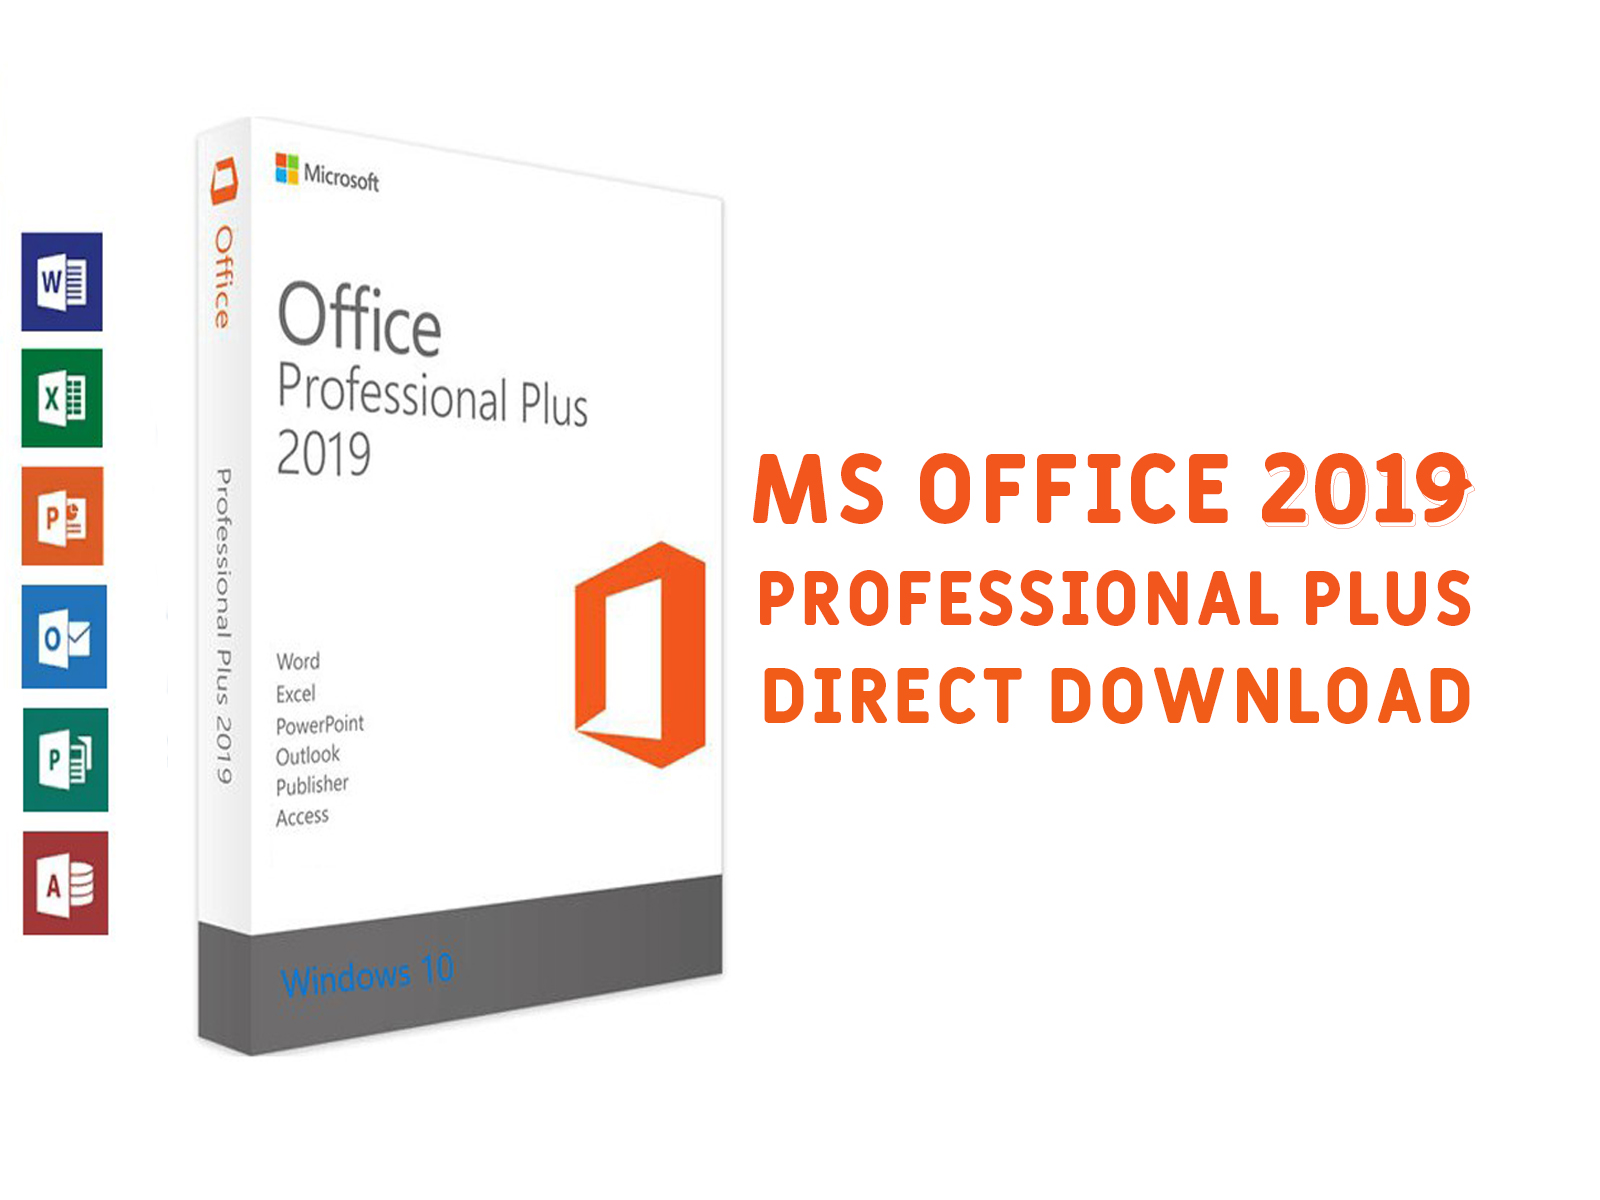 MS OFFICE 2019 PRO PLUS